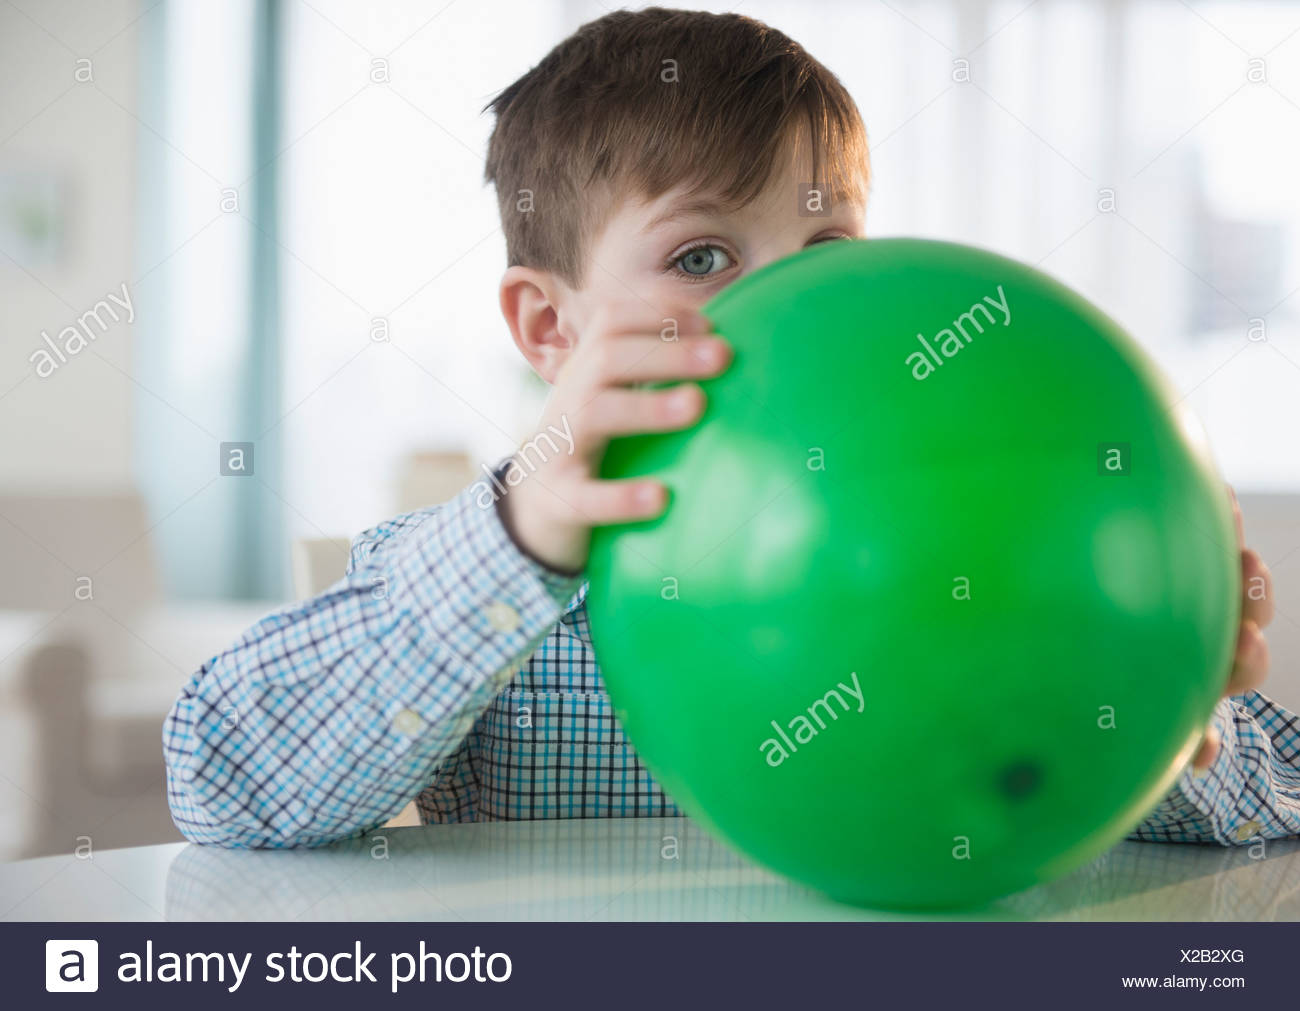 Portrait of boy (4-5) blowing balloon - Stock Image